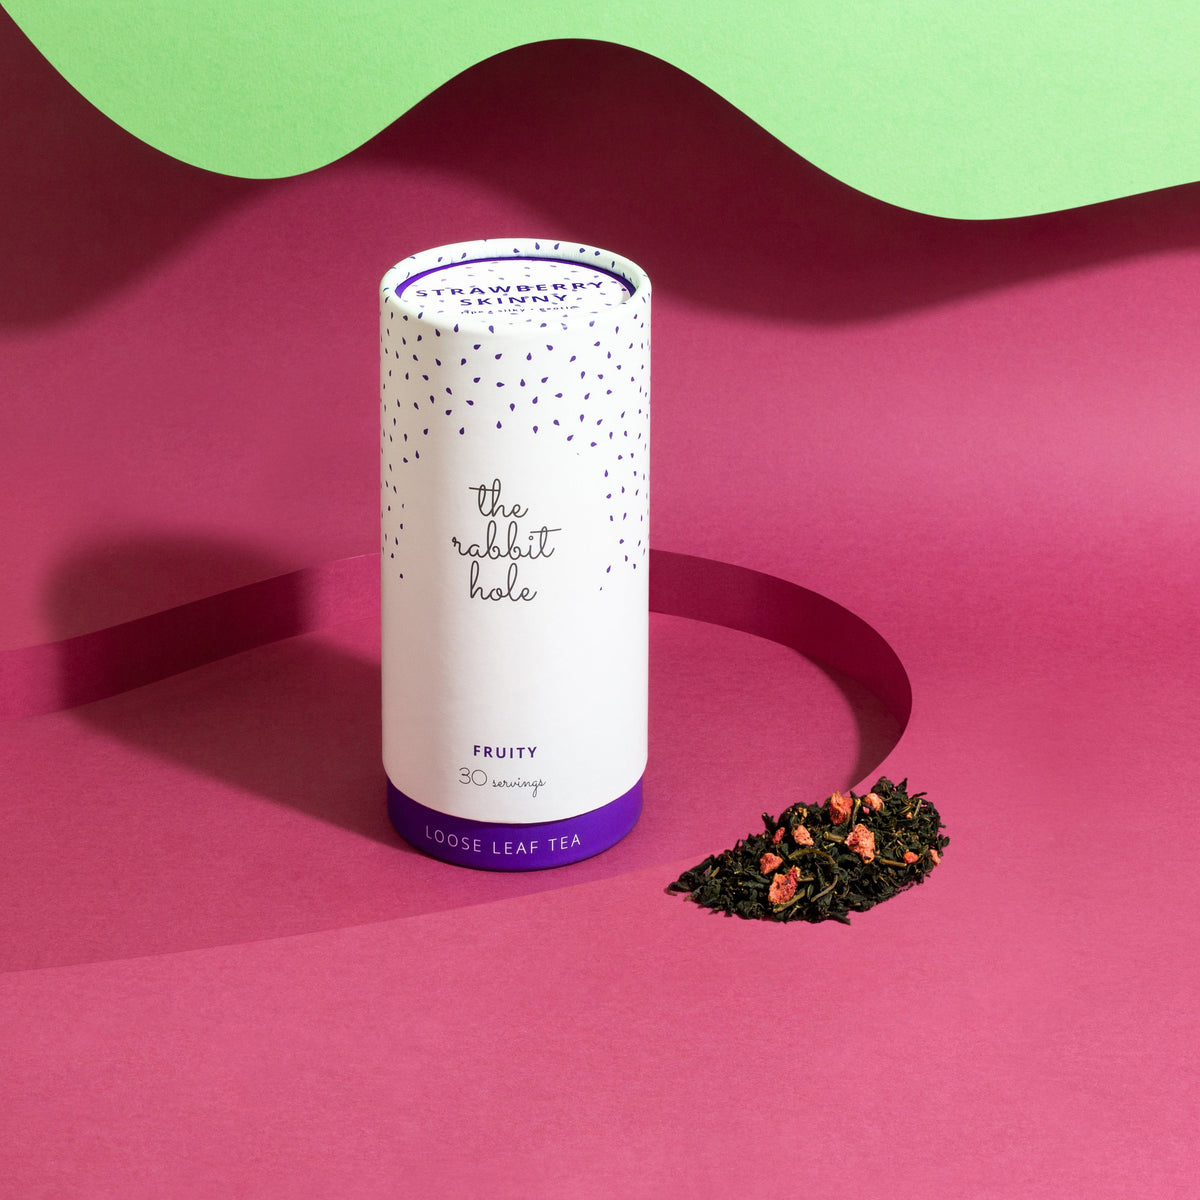 Strawberry Skinny Loose leaf Fruity tea by The Rabbit Hole - Australian Made Tea - canister on a bright pink and green background